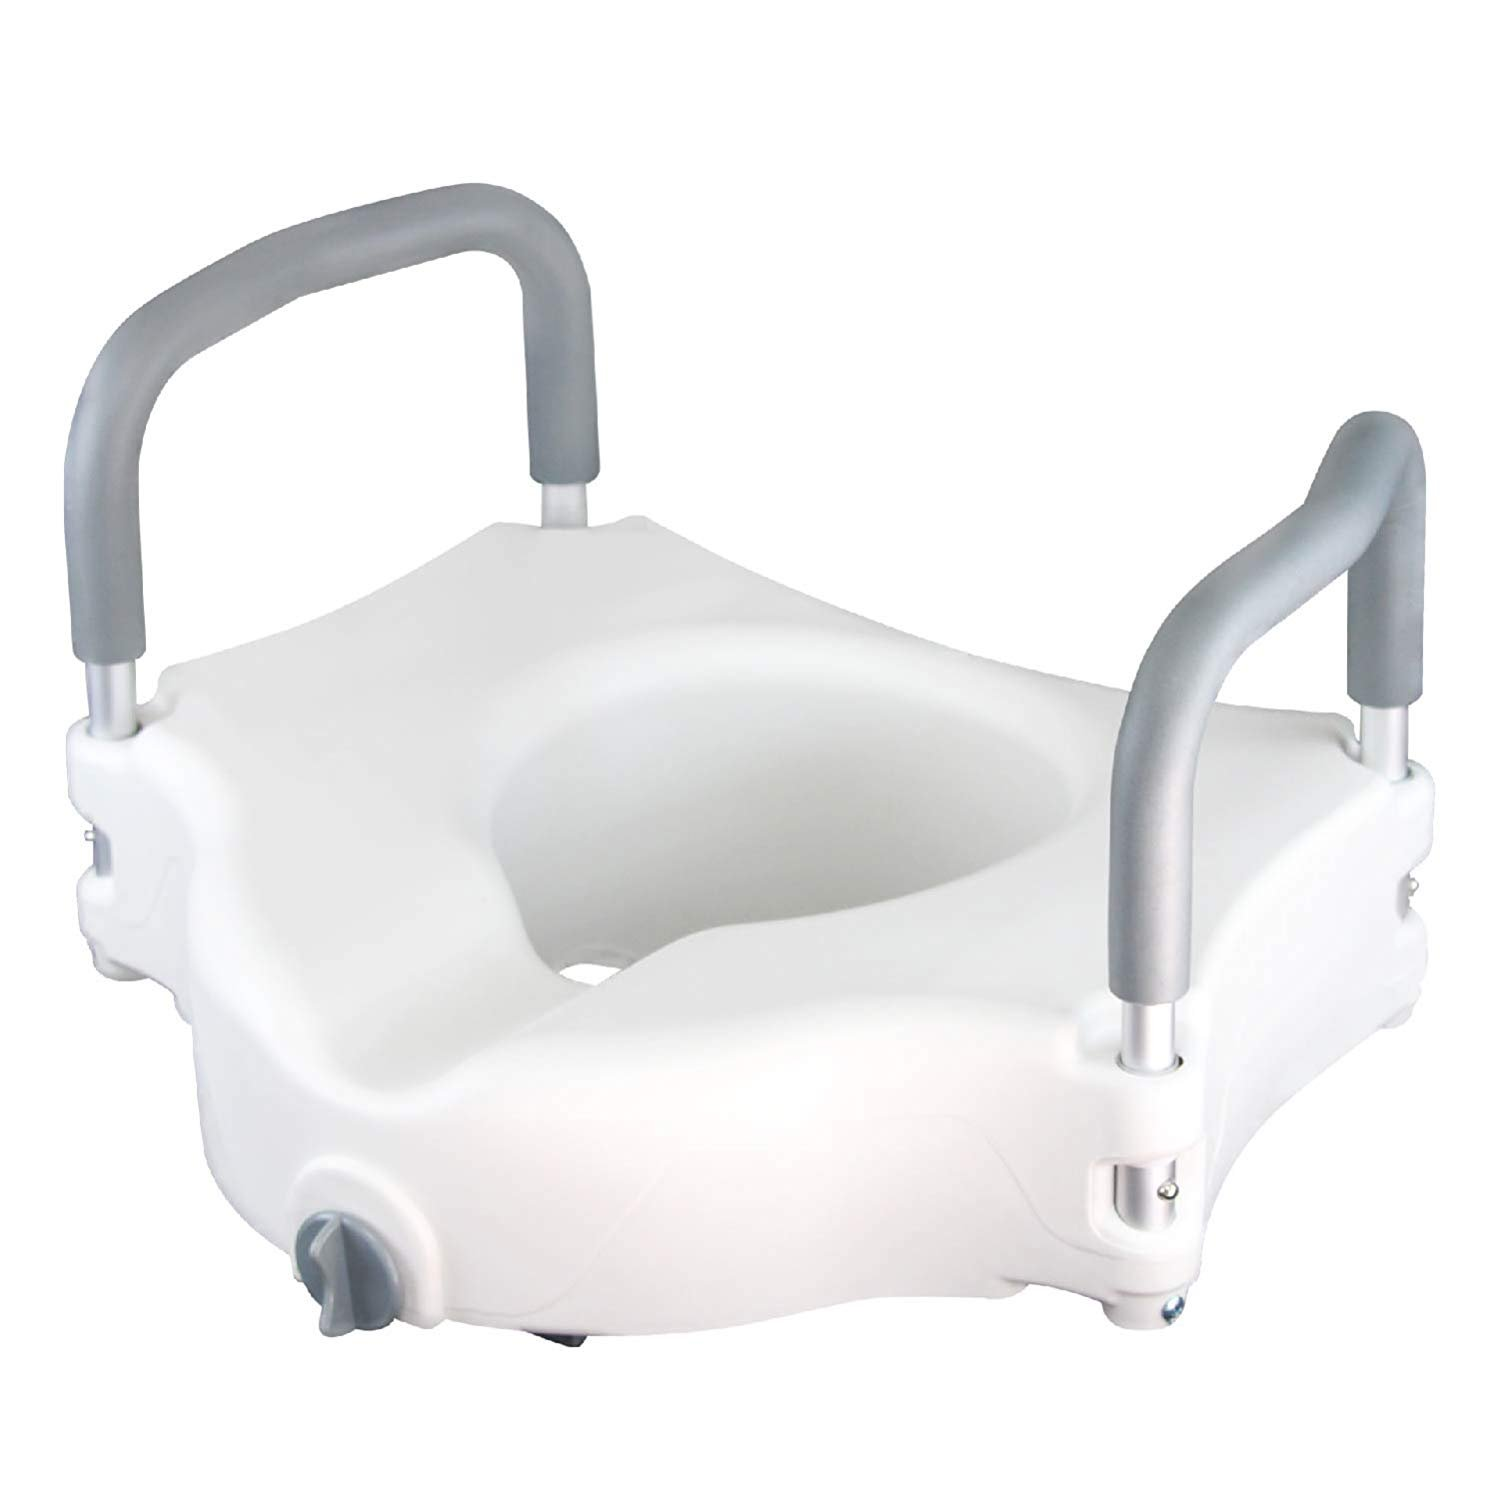 Doremy Medical Elevated Raised Toilet Seat with Arms for Bathroom Safety, White (No Cover)